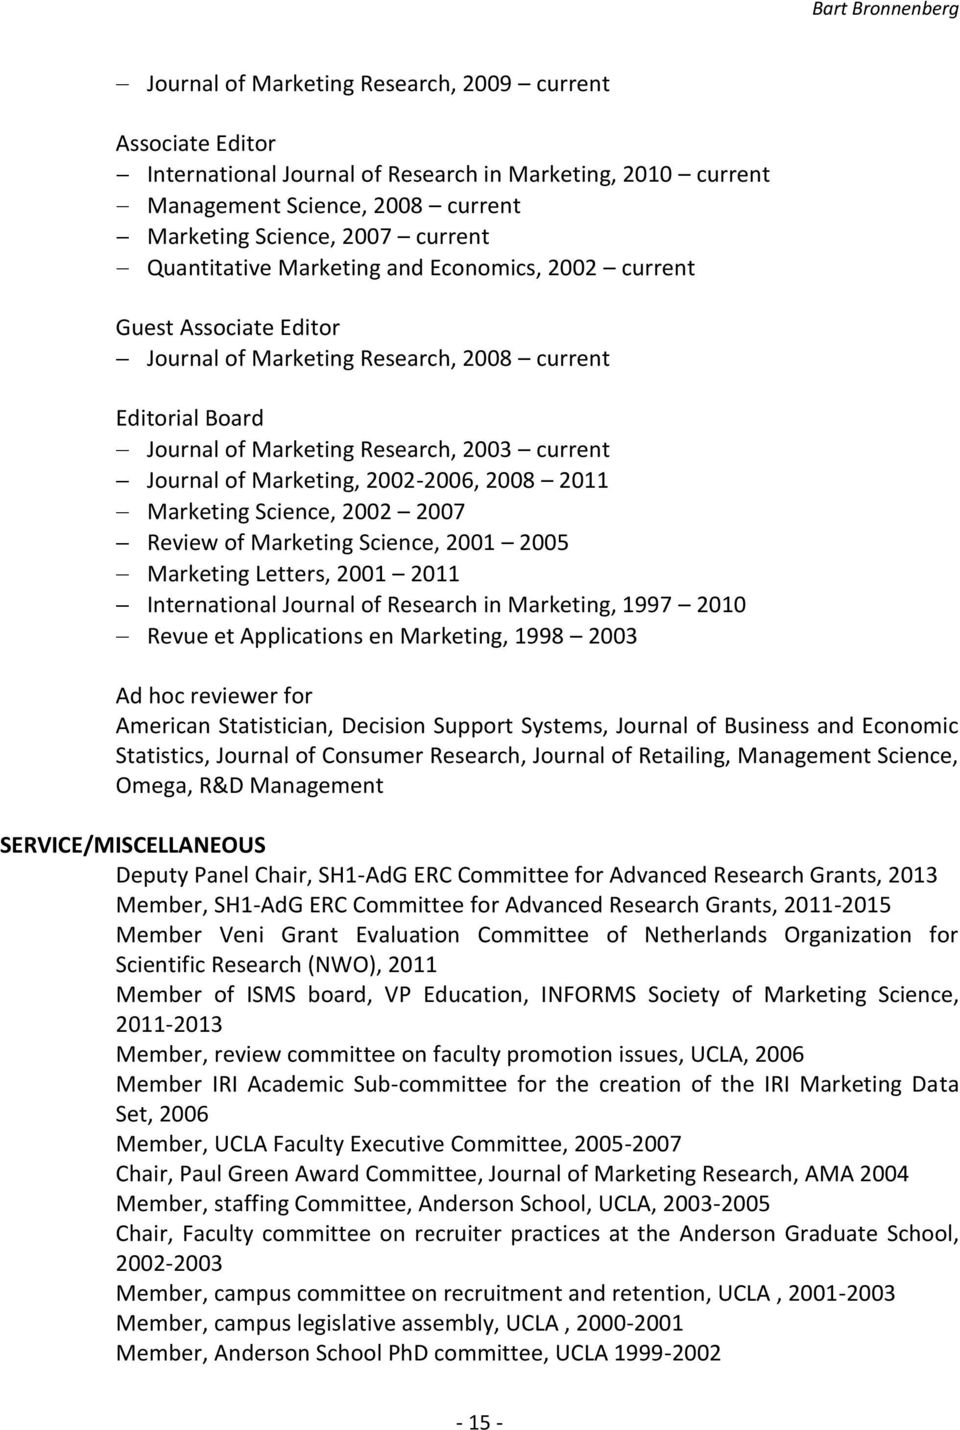 2008 2011 Marketing Science, 2002 2007 Review of Marketing Science, 2001 2005 Marketing Letters, 2001 2011 International Journal of Research in Marketing, 1997 2010 Revue et Applications en